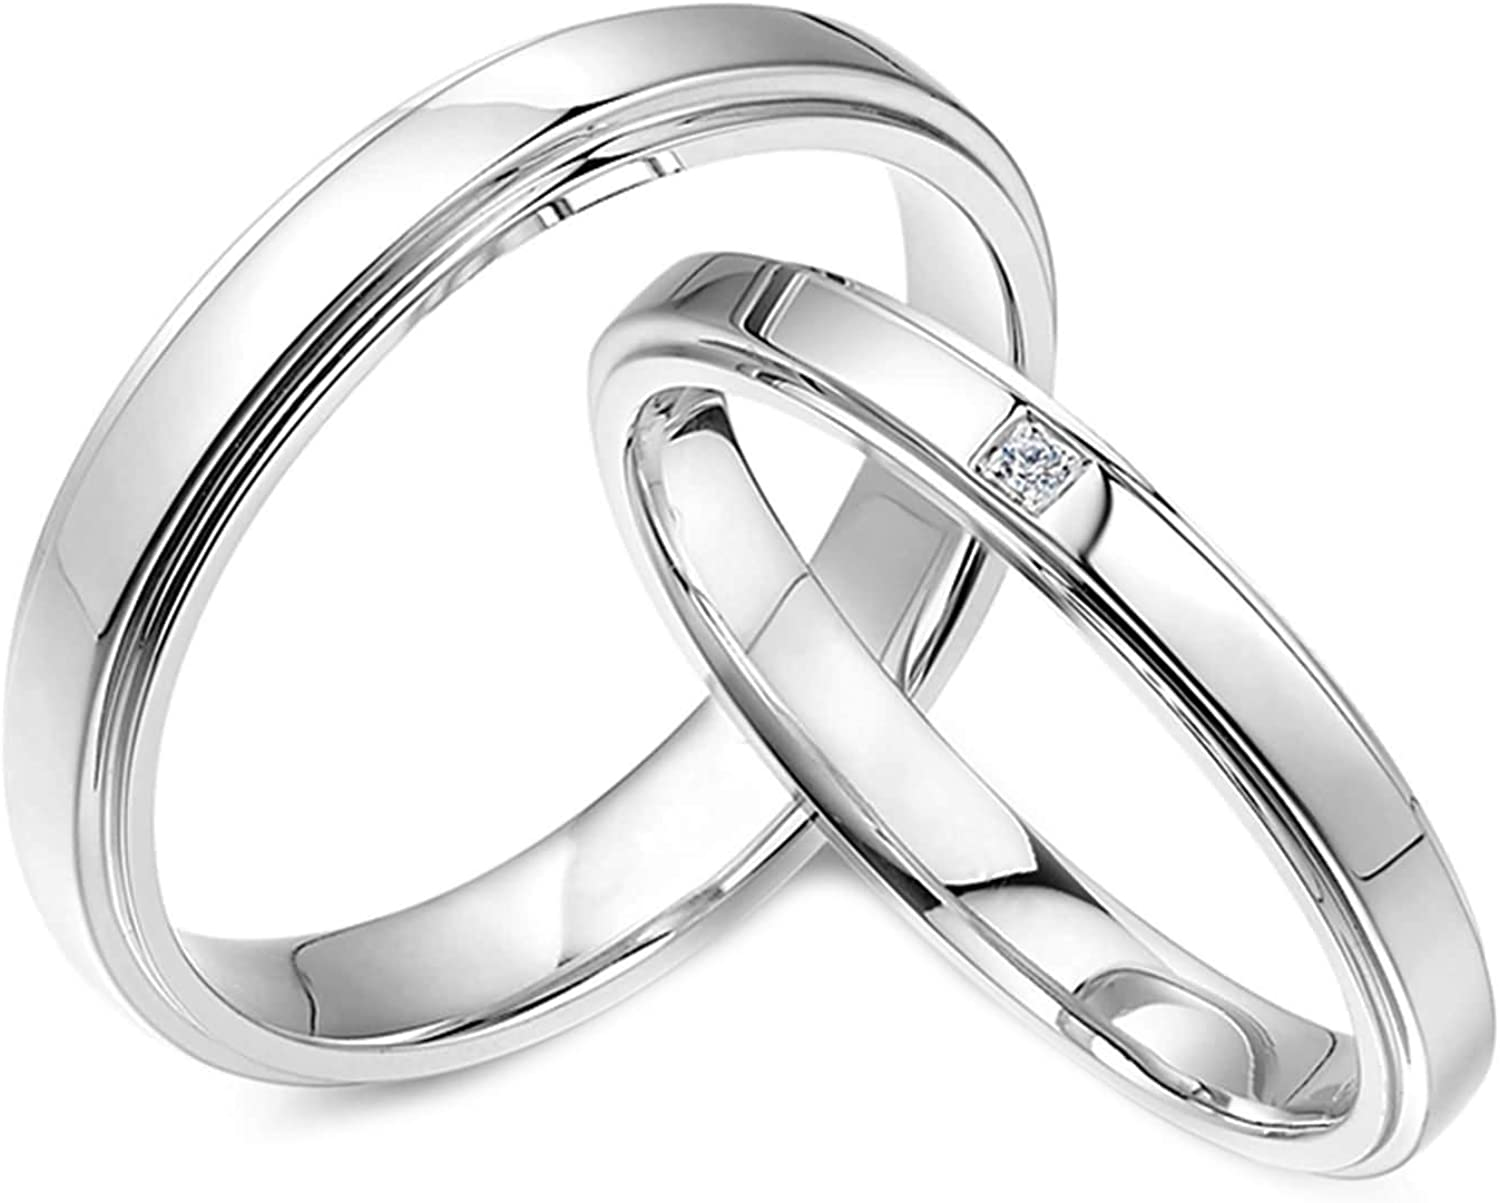 Direct store Daesar Platinum Rings for Men Engraved Couple Si and Women Max 46% OFF